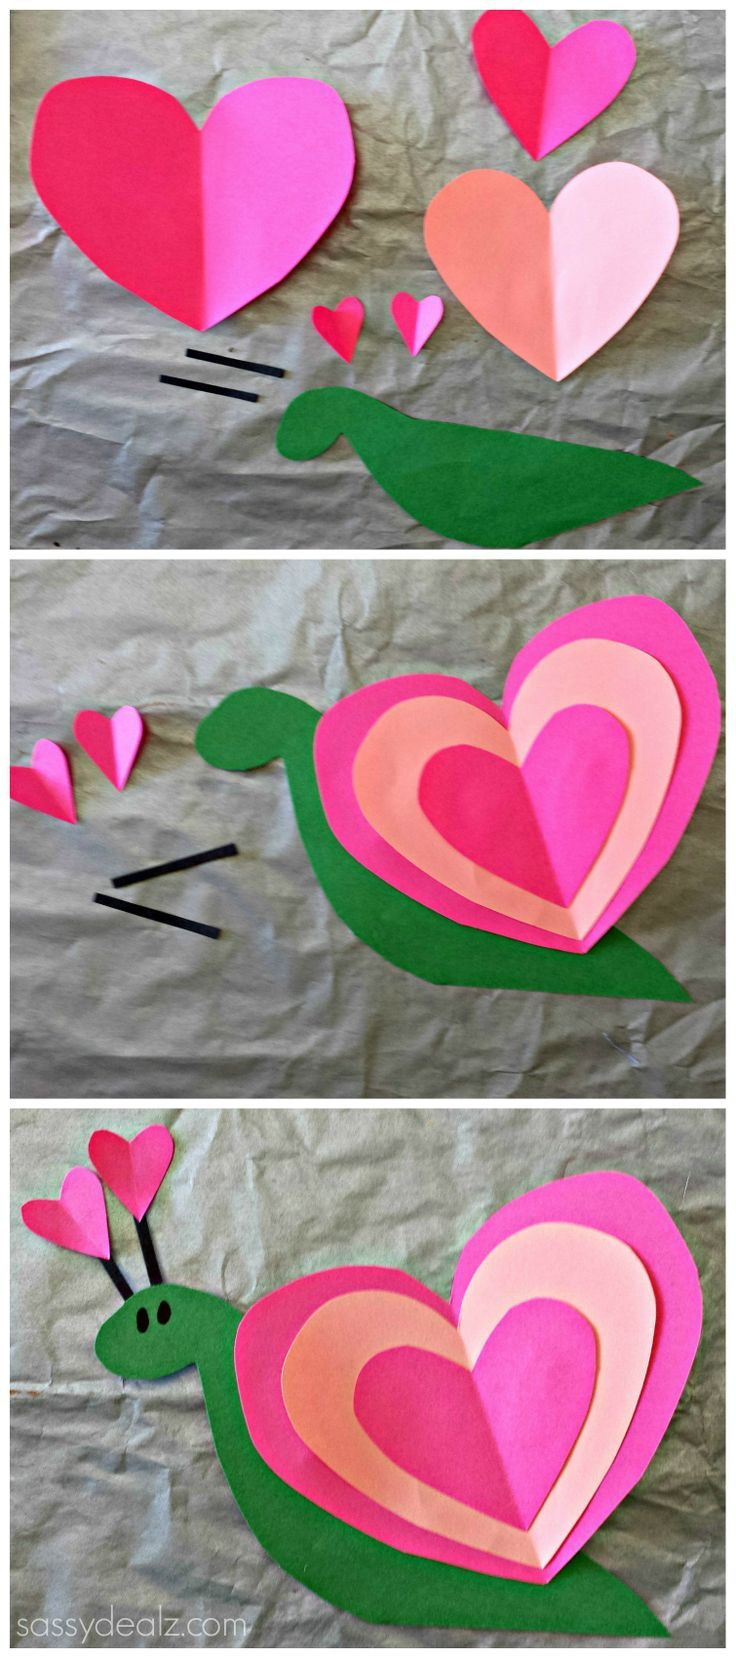 Heart Snail Craft For Kids (Valentine Art Project) #Heart shaped animal #DIY…